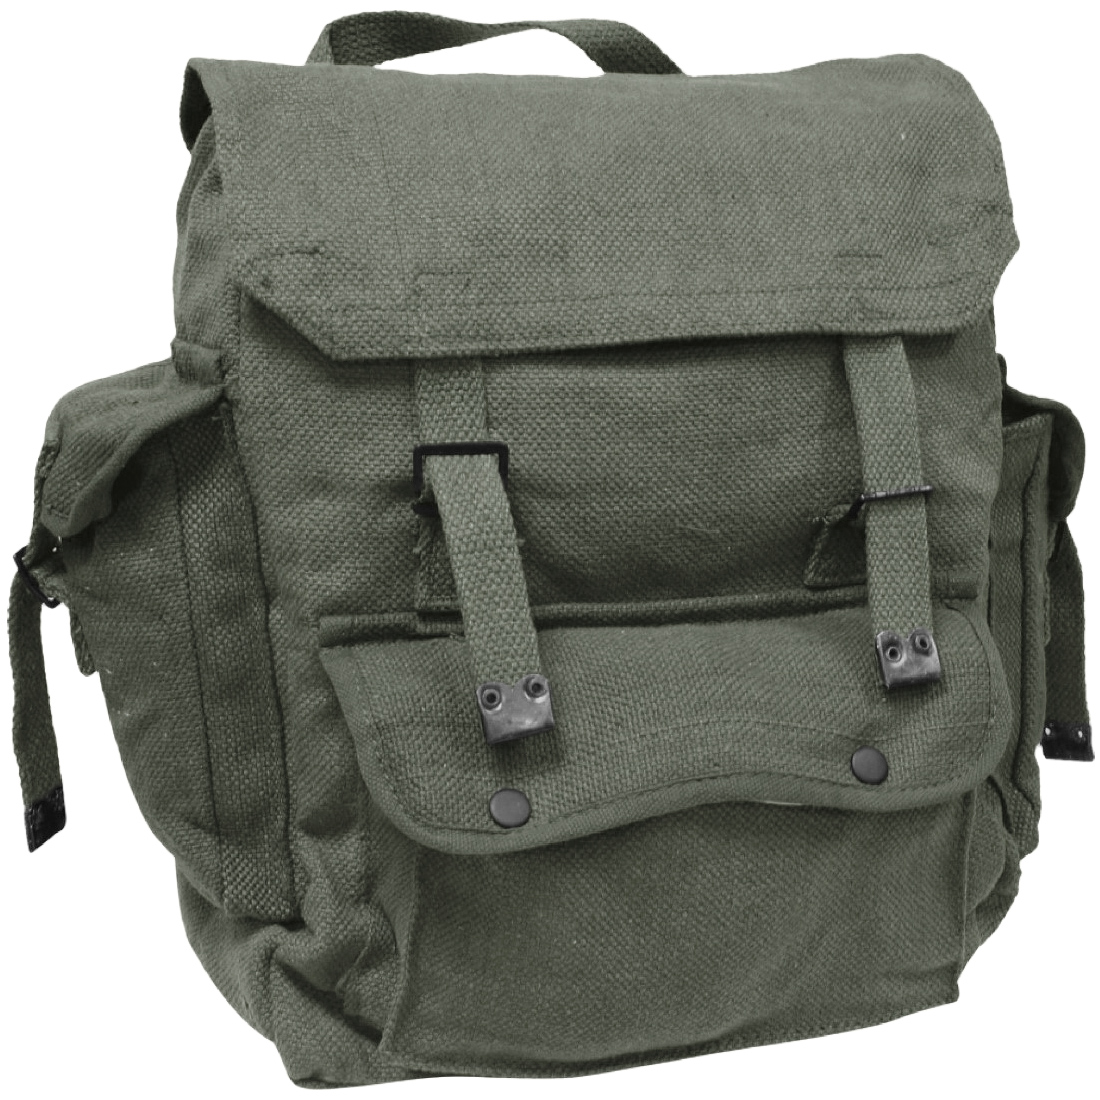 ea869e132 Details about Highlander Large Pocketed Web Backpack Hiking Cotton Bag Canvas  Rucksack Olive